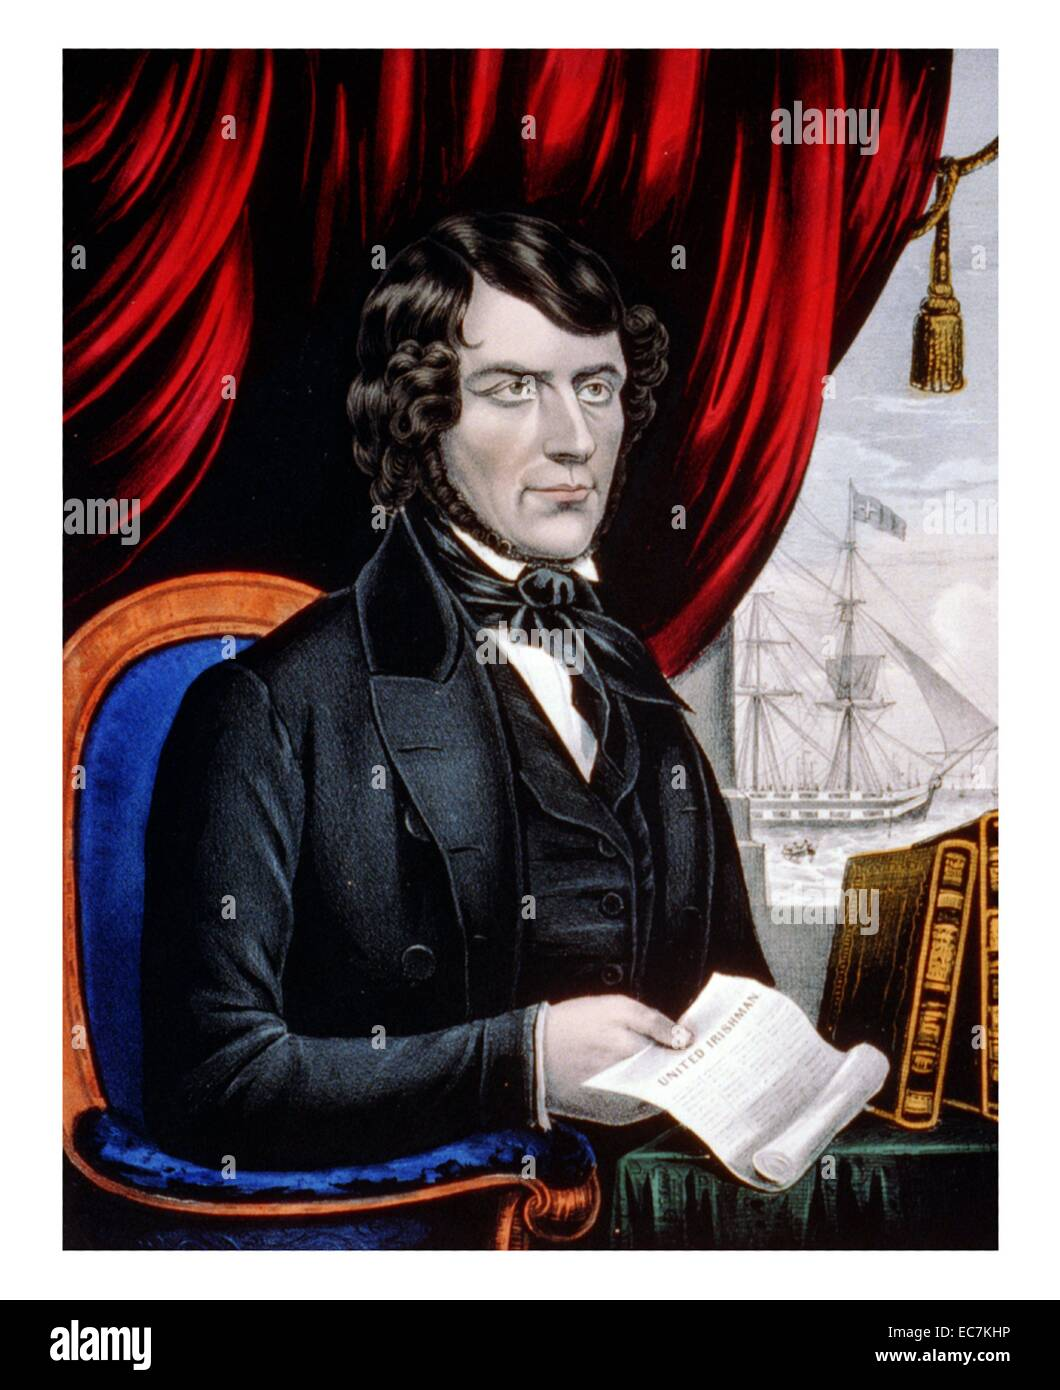 5ed3cf253e John Mitchel - the first martyr of Ireland during her revolution of 1848.  He holds